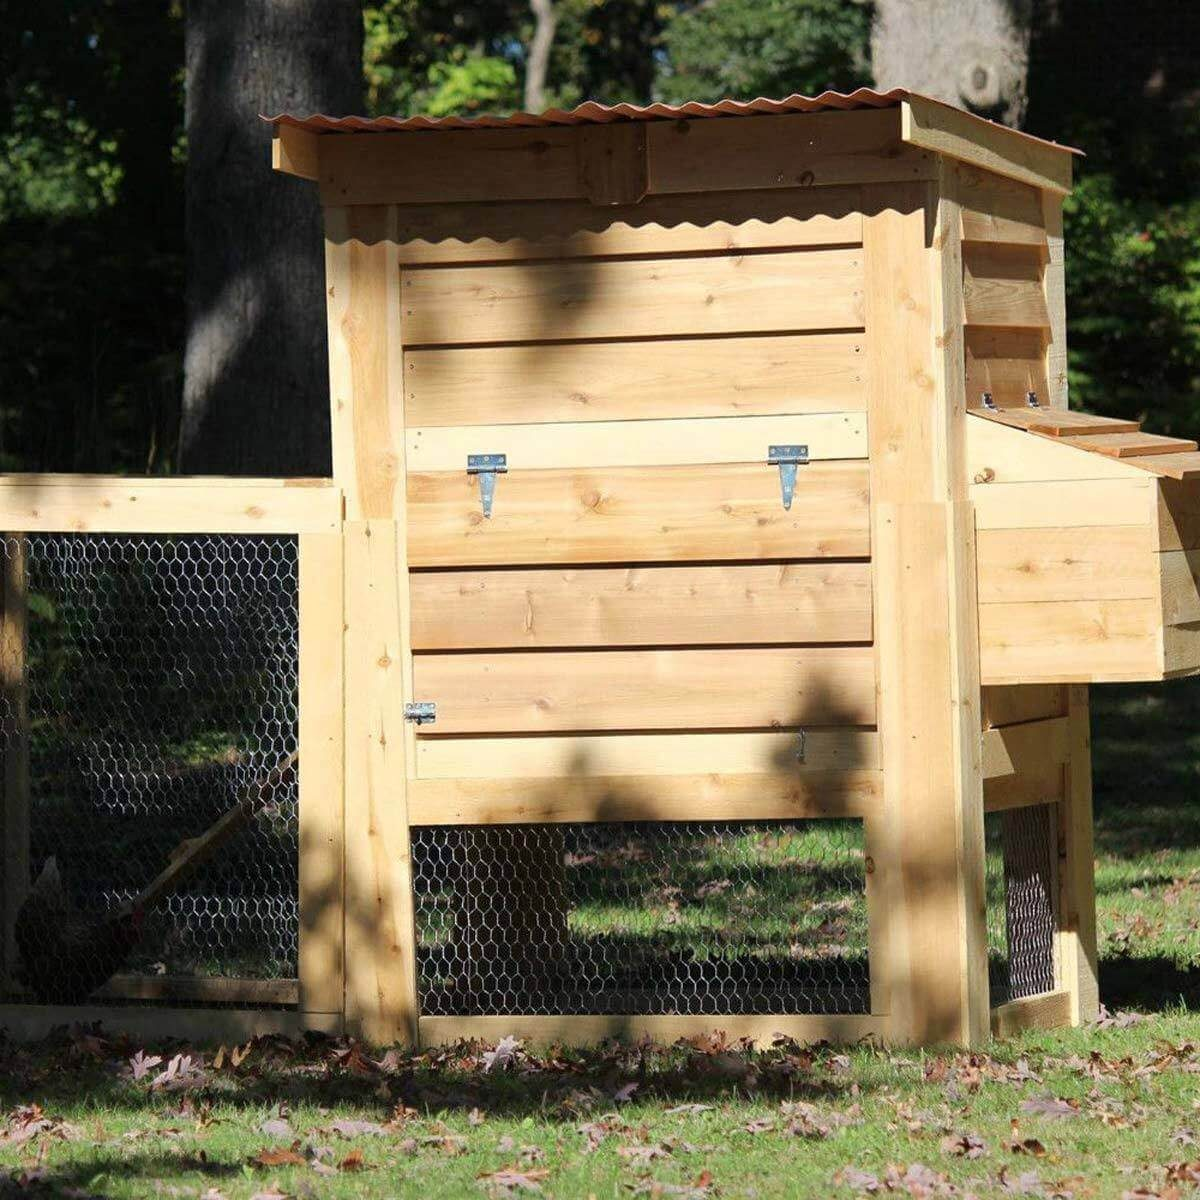 14 Wonderful and Wacky Chicken Coop Ideas — The Family Handyman